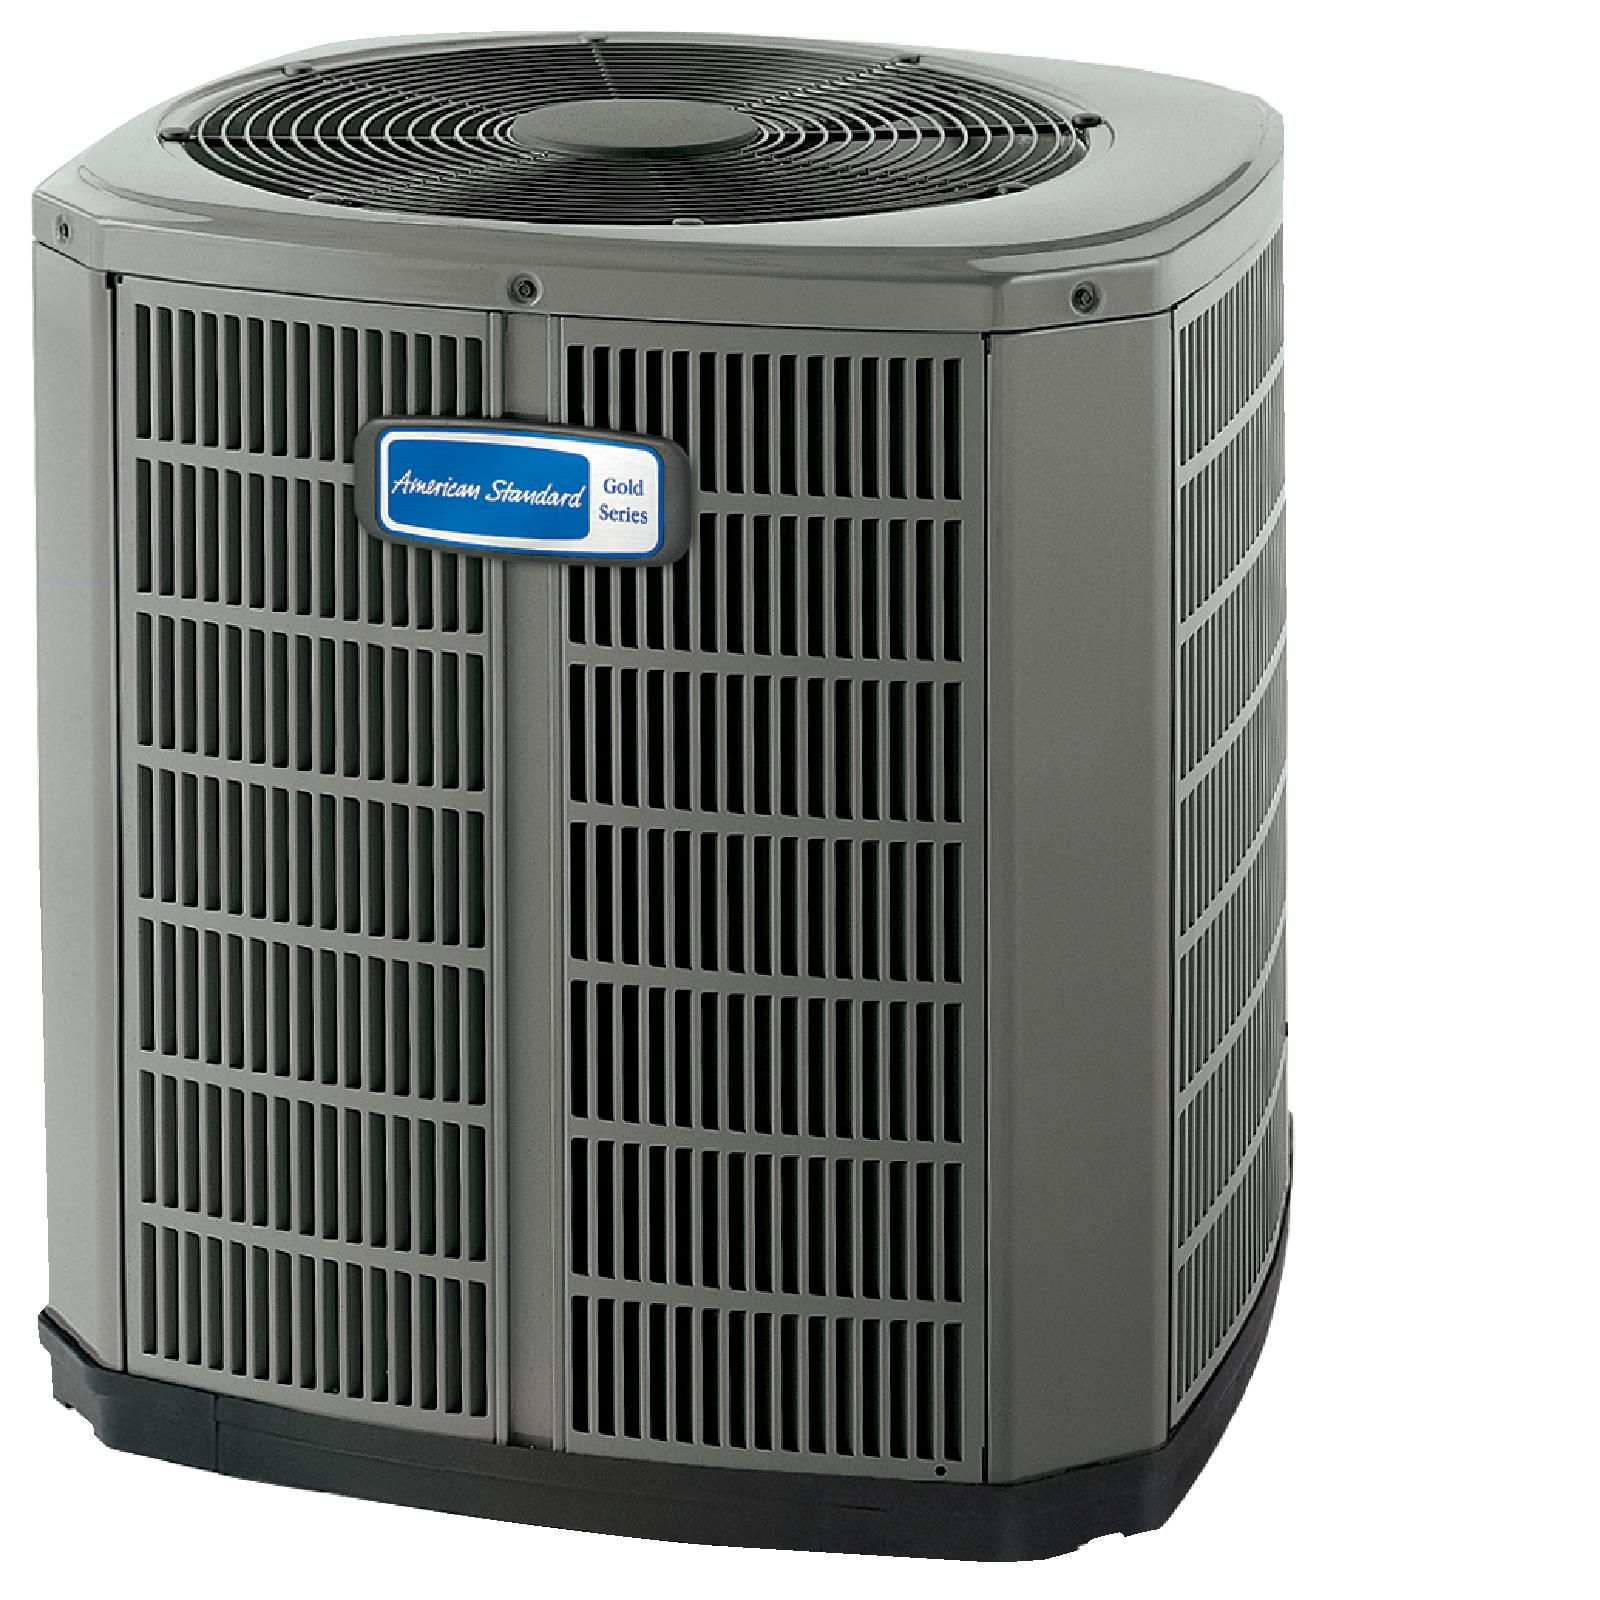 Northeastern American Standard Heating Air Conditioning Ac Condensing Units